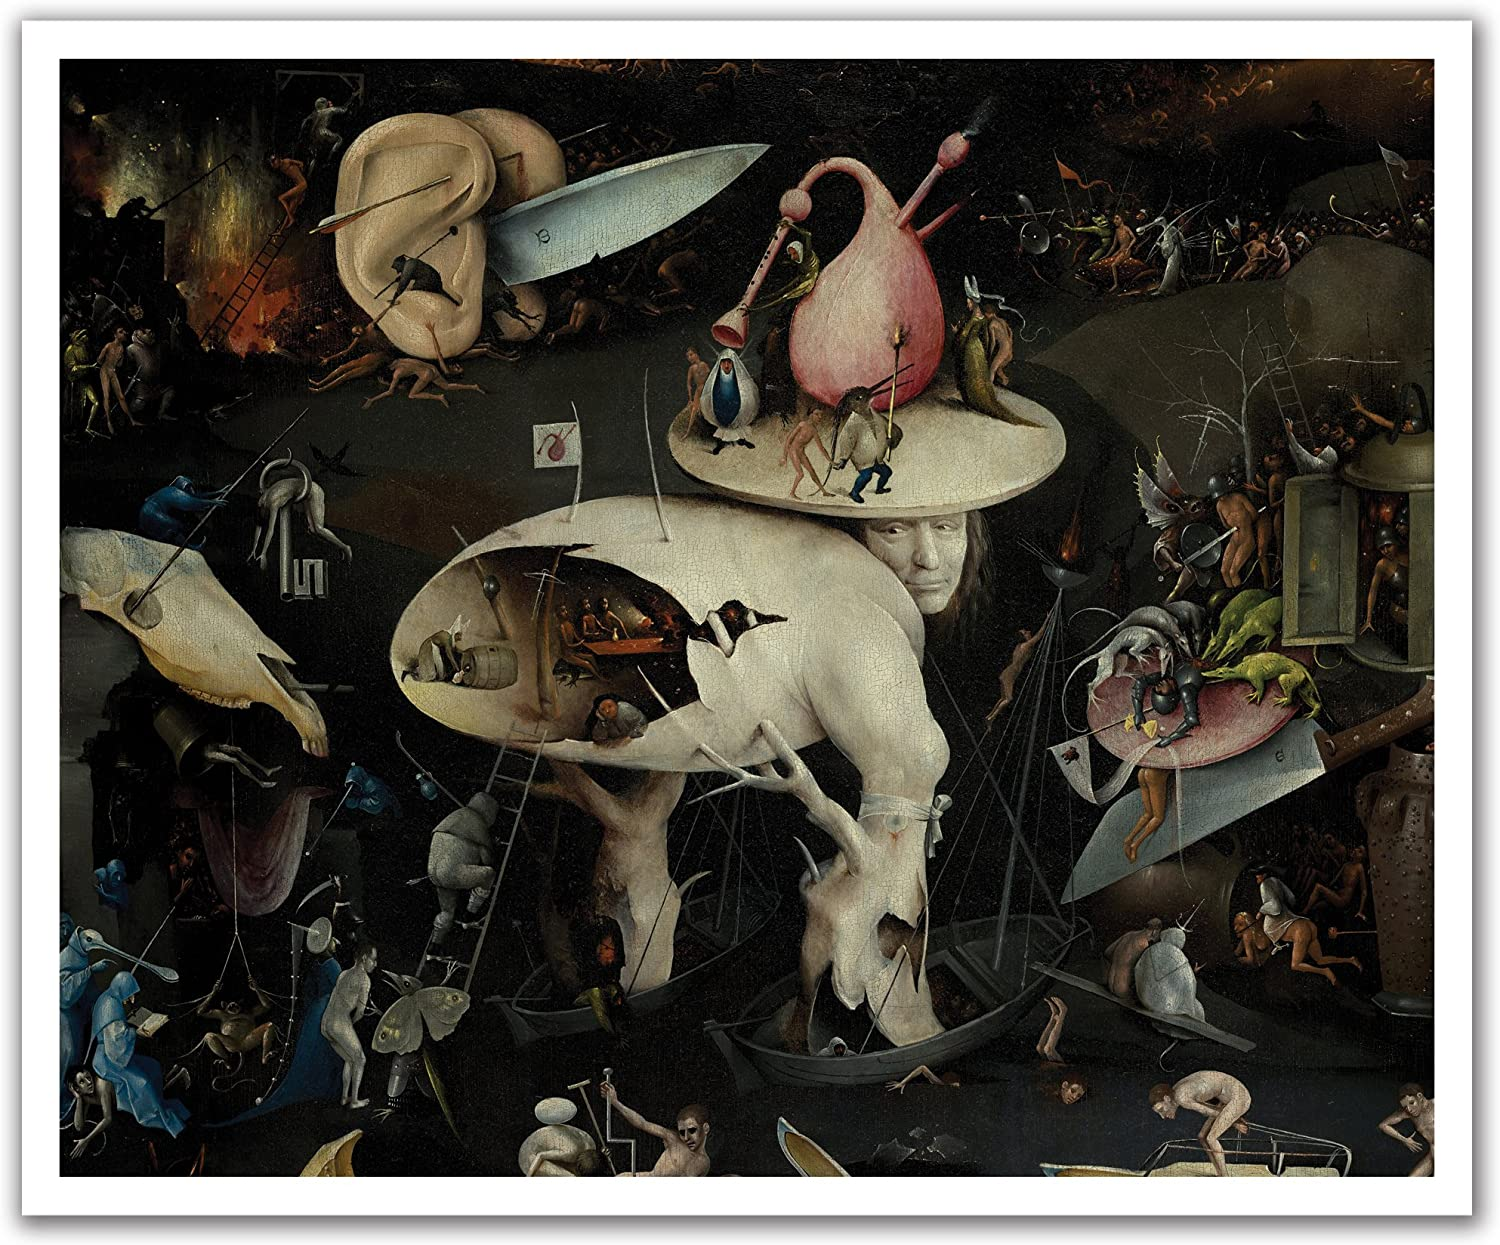 JP London POSLT2288 uStrip Lite Bosch Removable Wallpaper Decal Mural The Garden of Earthly Delights Painting, 24-Inch x 19.75-Inch